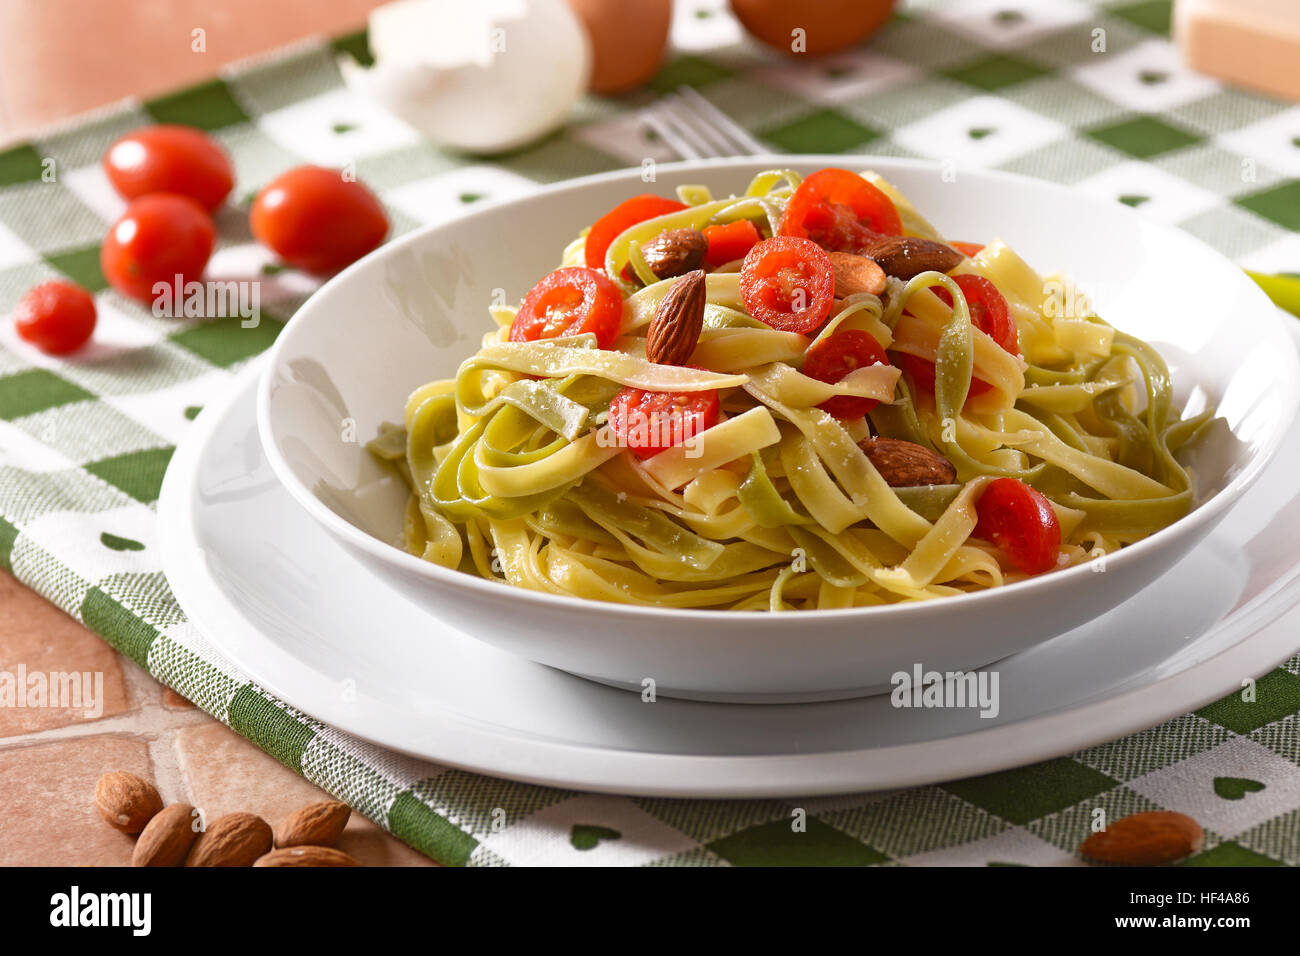 egg noodles with tomato and almonds - Stock Image